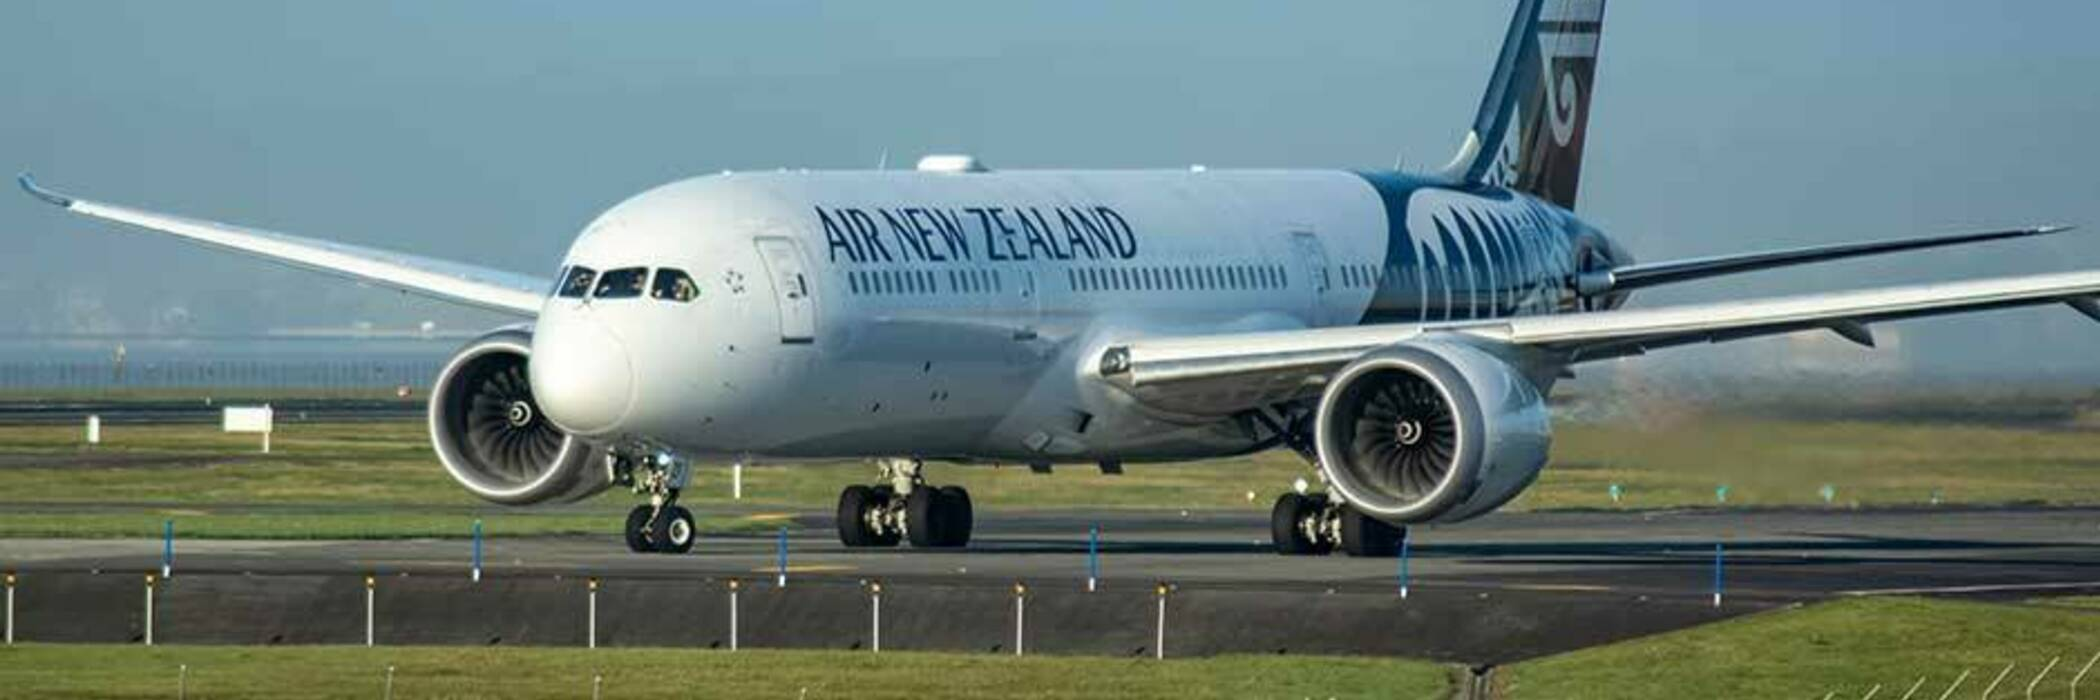 Grounded Air New Zealand flight.